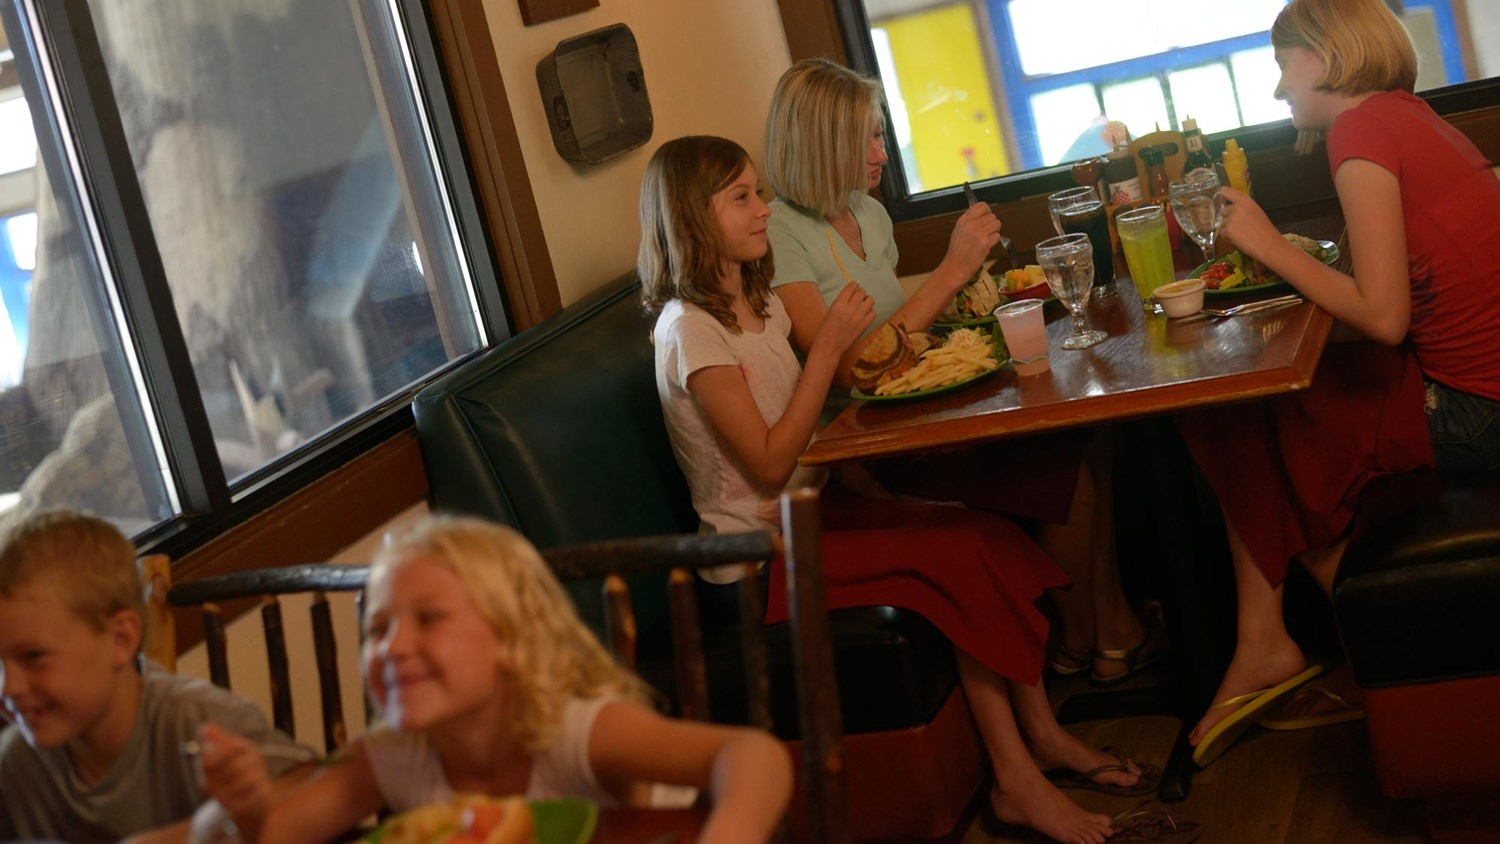 Family enjoying their meal at Smokeys